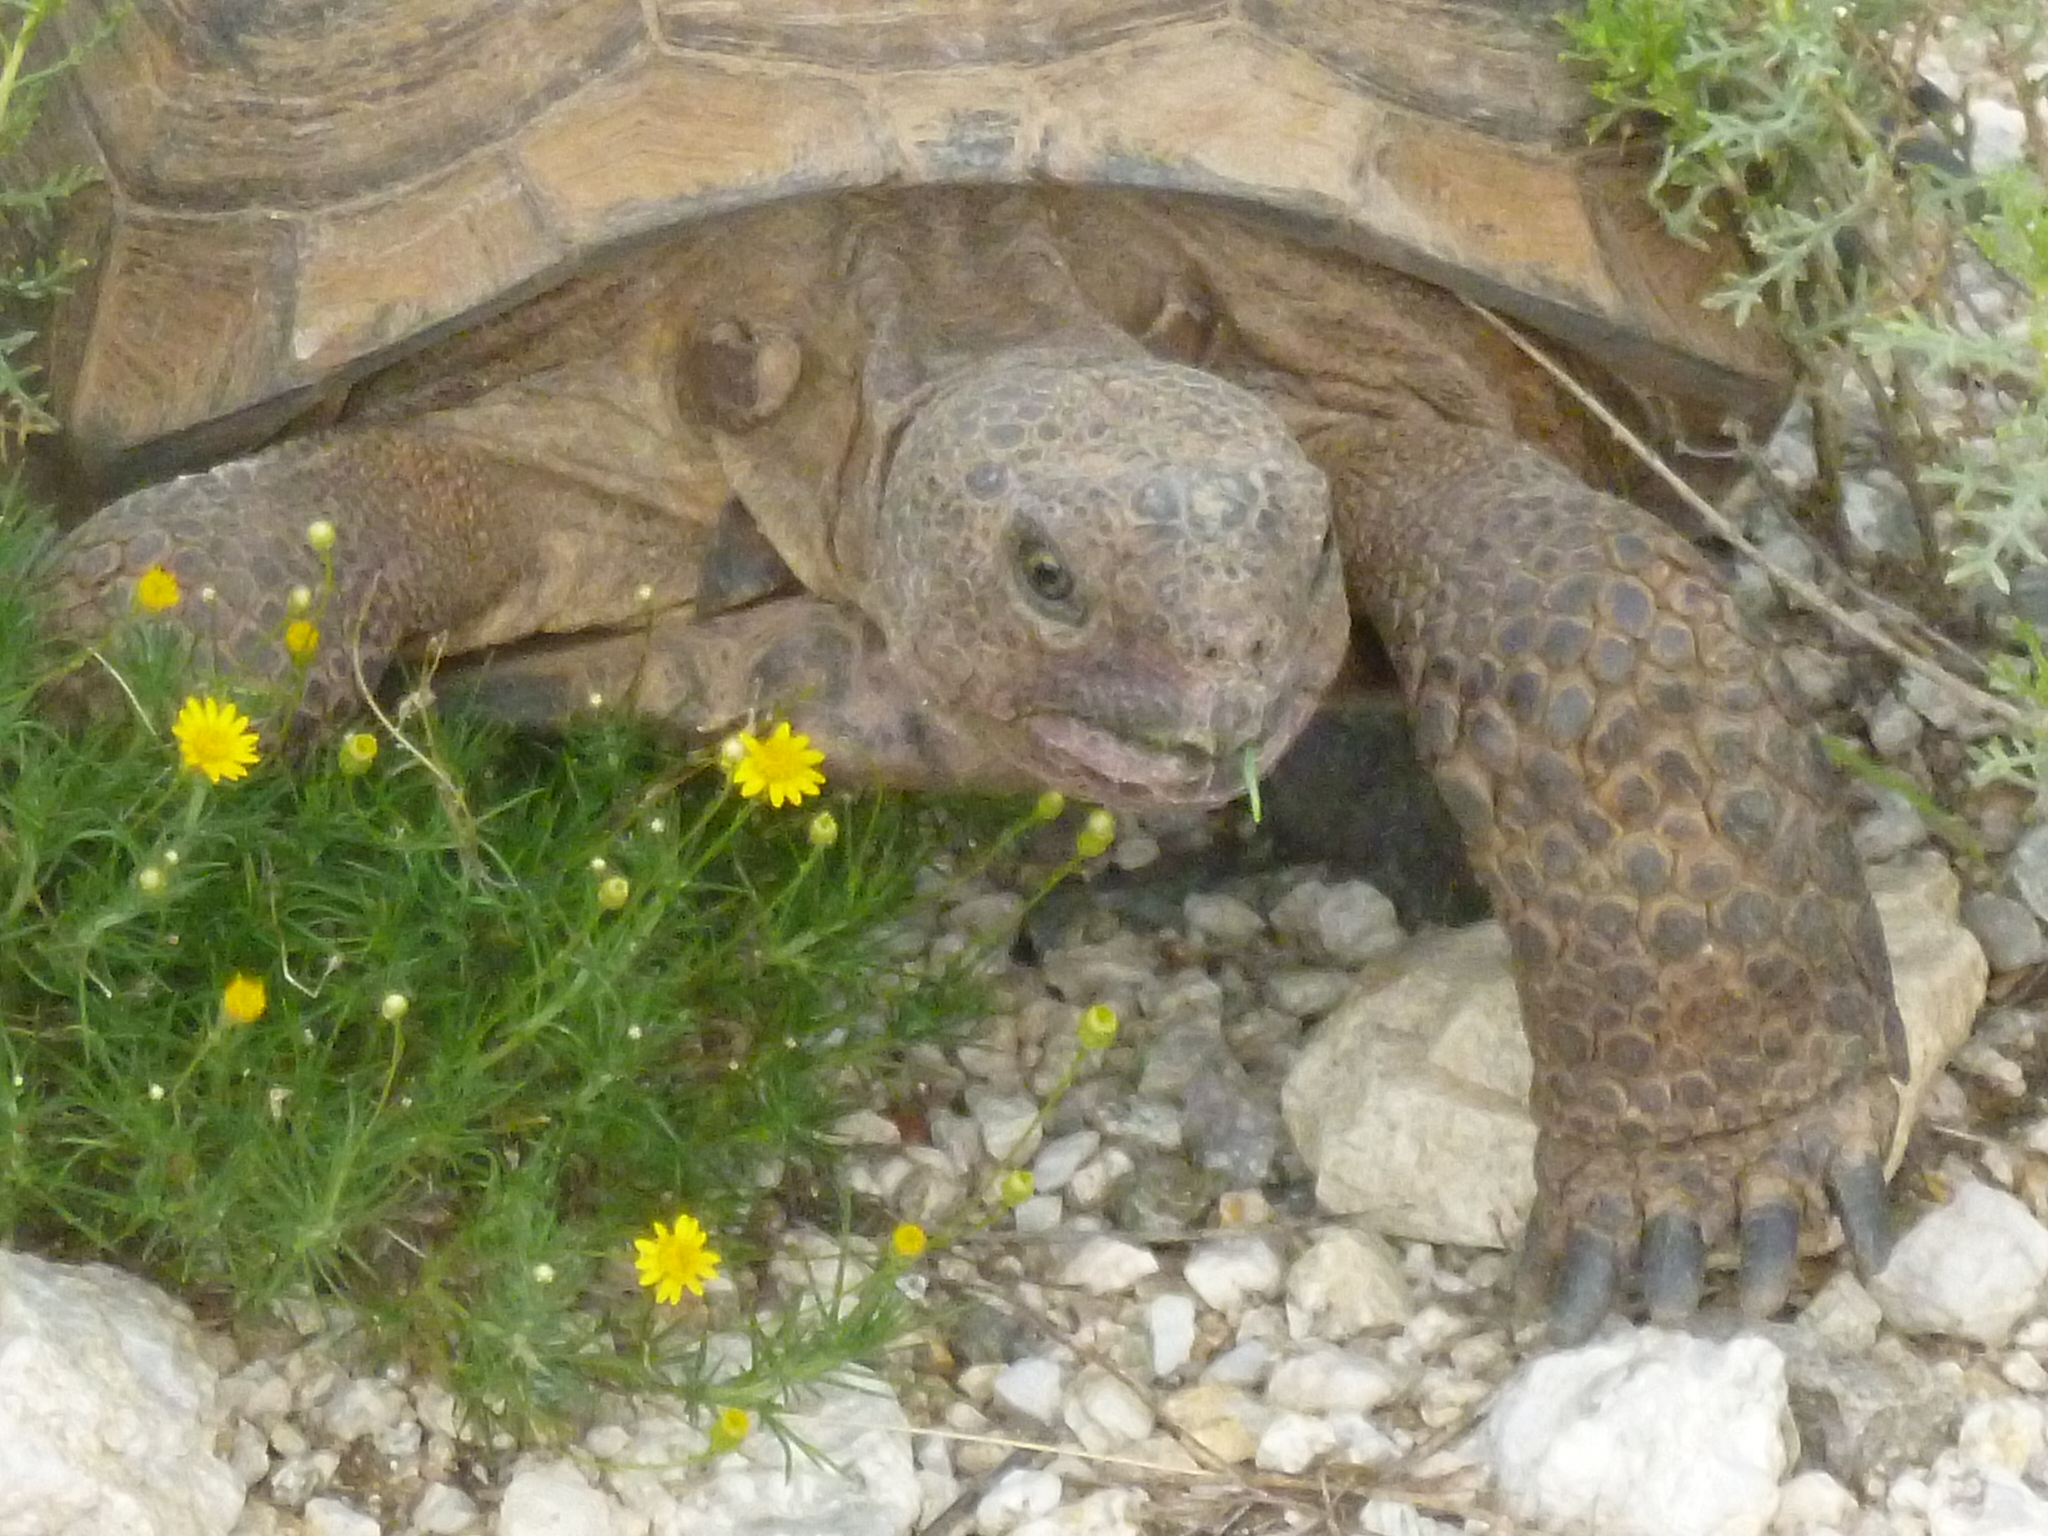 characteristics of the desert tortoise The morphological characteristics of concerning the morphology of the liver of the desert tortoise testudo graeca, the results of the present workhave.